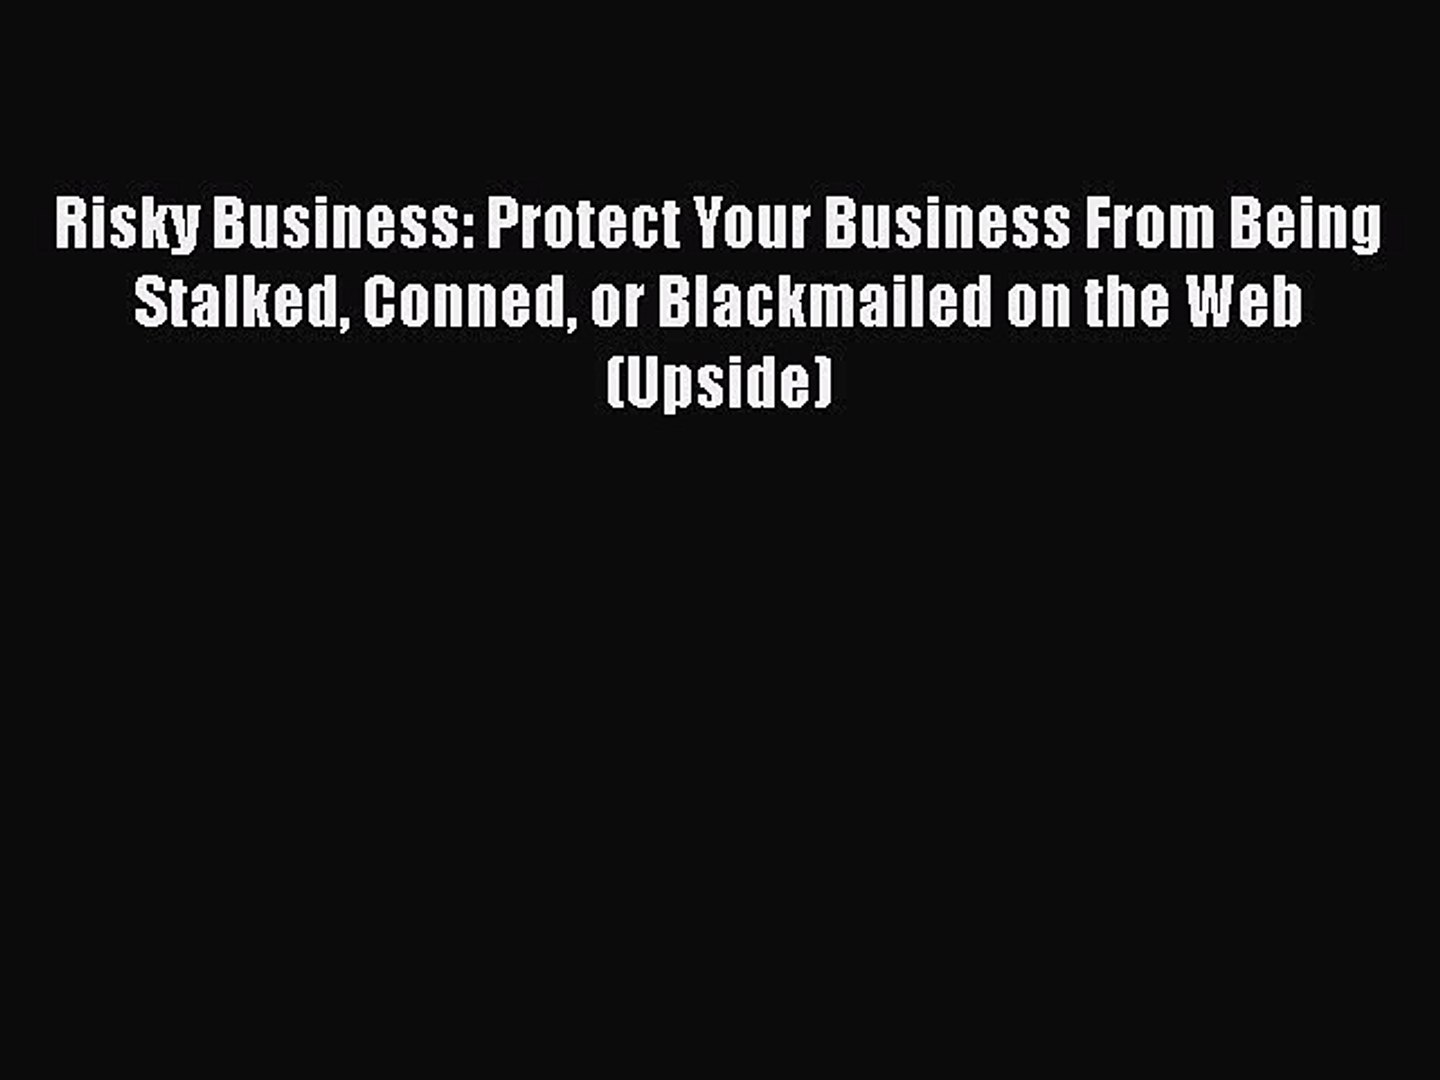 Free [PDF] Downlaod Risky Business: Protect Your Business From Being Stalked Conned or Blackmailed